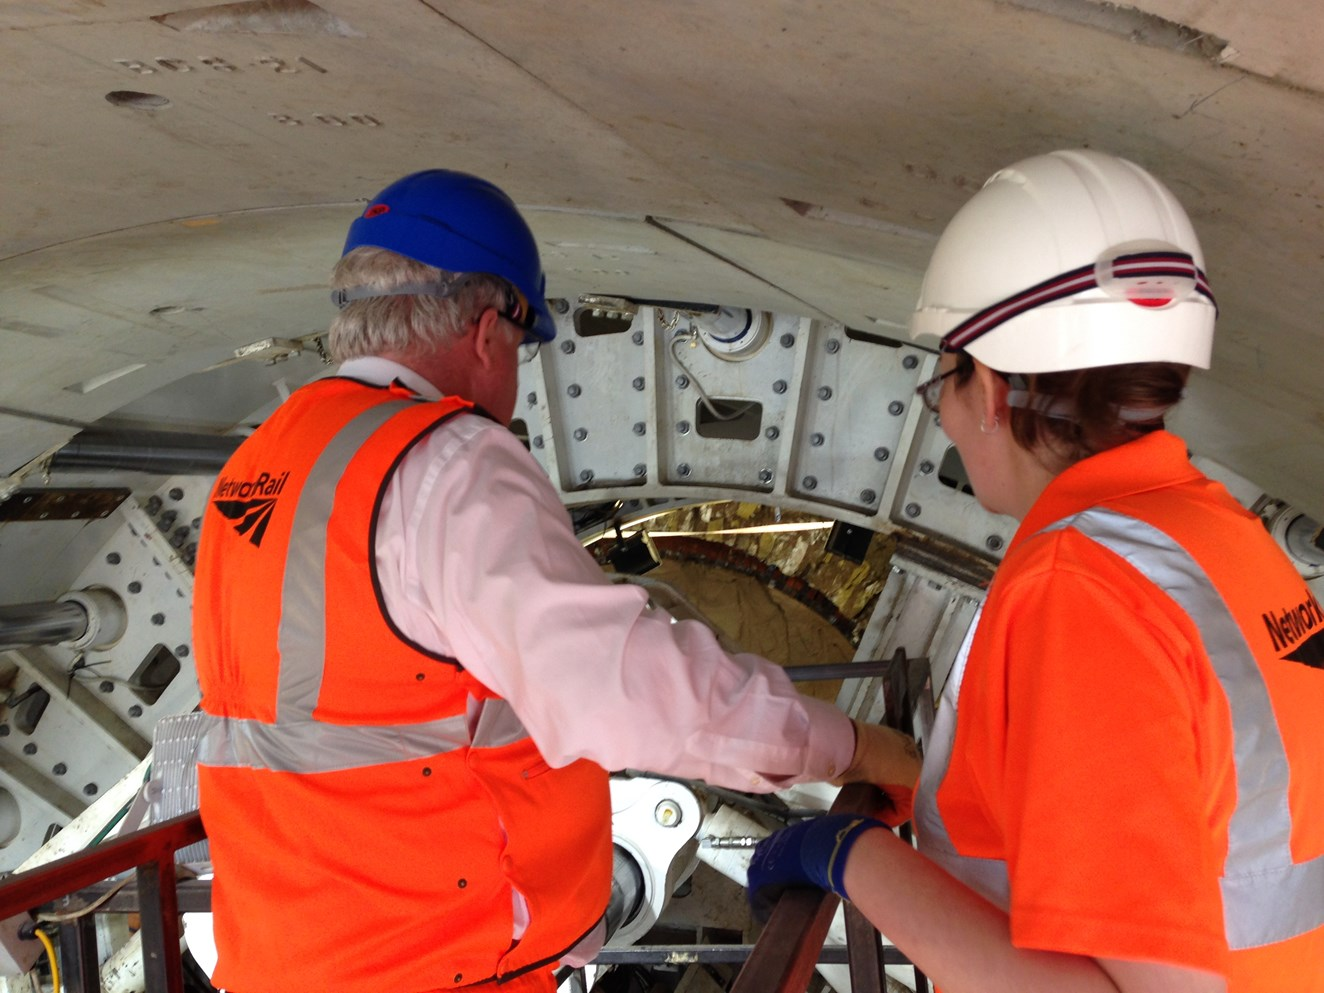 Britain's biggest tunnel-boring machine starts work on Bolton railway upgrade: Patrick McLoughlin and Bethan Dale inside Farnworth Tunnel